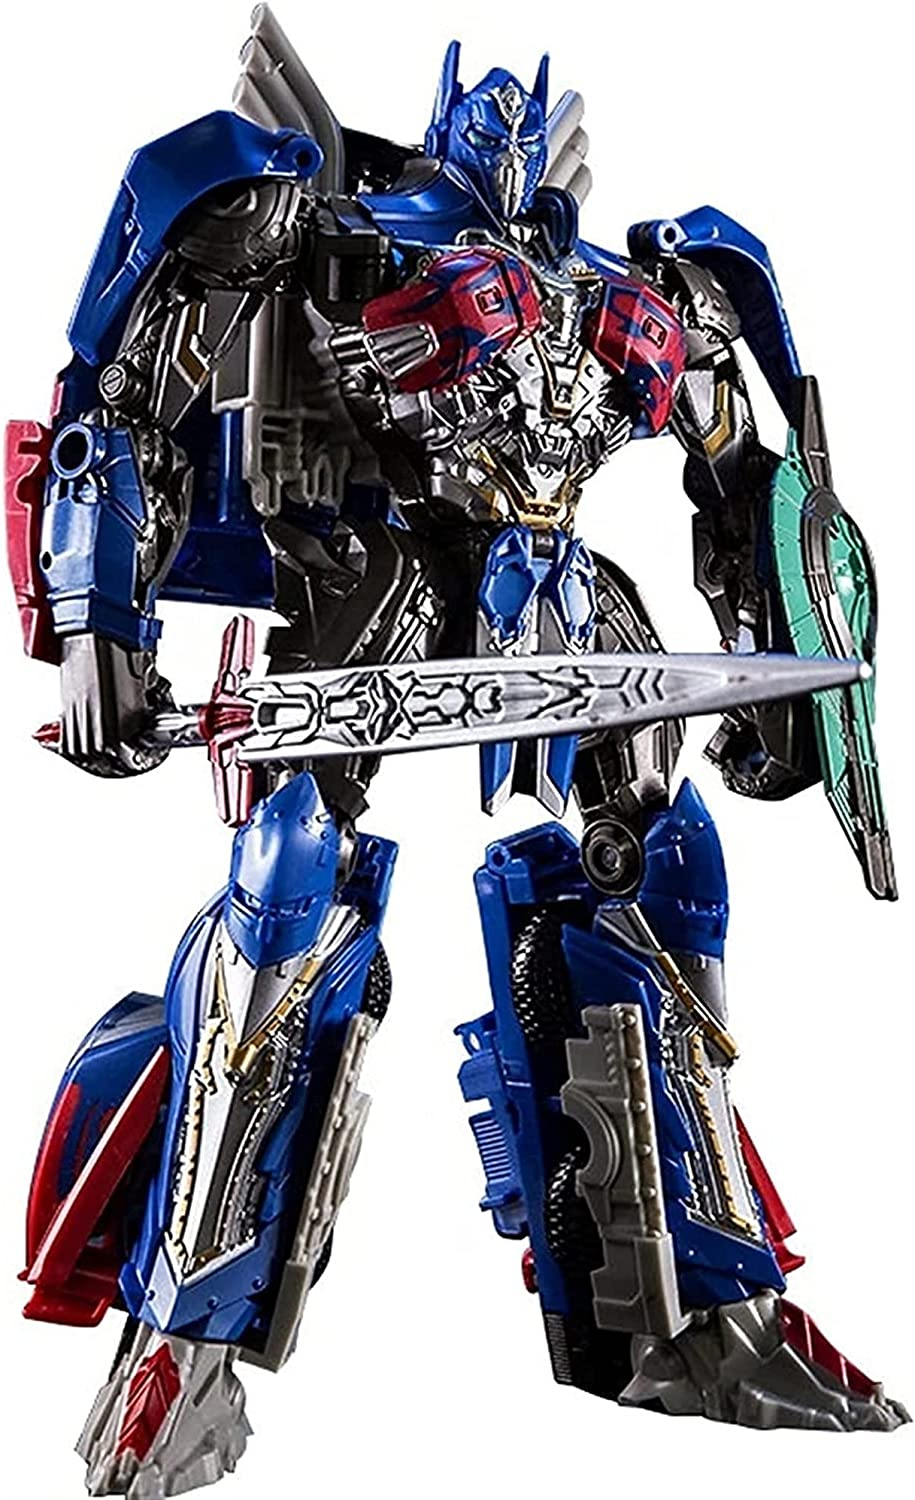 Spring new work one after another Sterling store Endurance Transformers Optimus Transfor Cybertron Prime